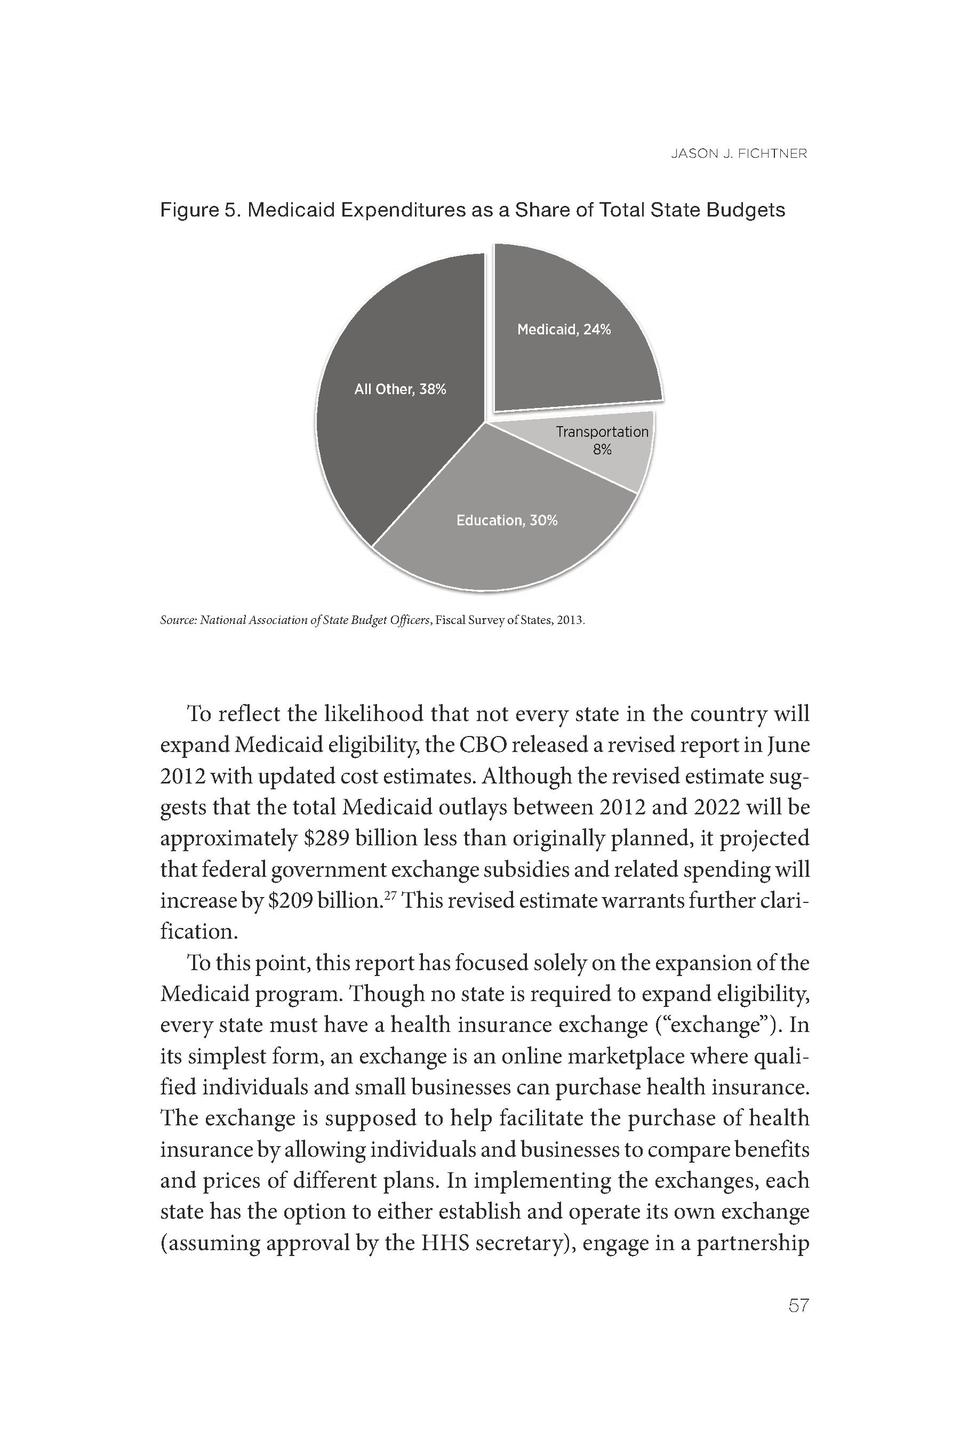 JASON J. FICHTNER  Figure 5. Medicaid Expenditures as a Share of Total State Budgets  Medicaid, 24   All Other, 38  Transp...